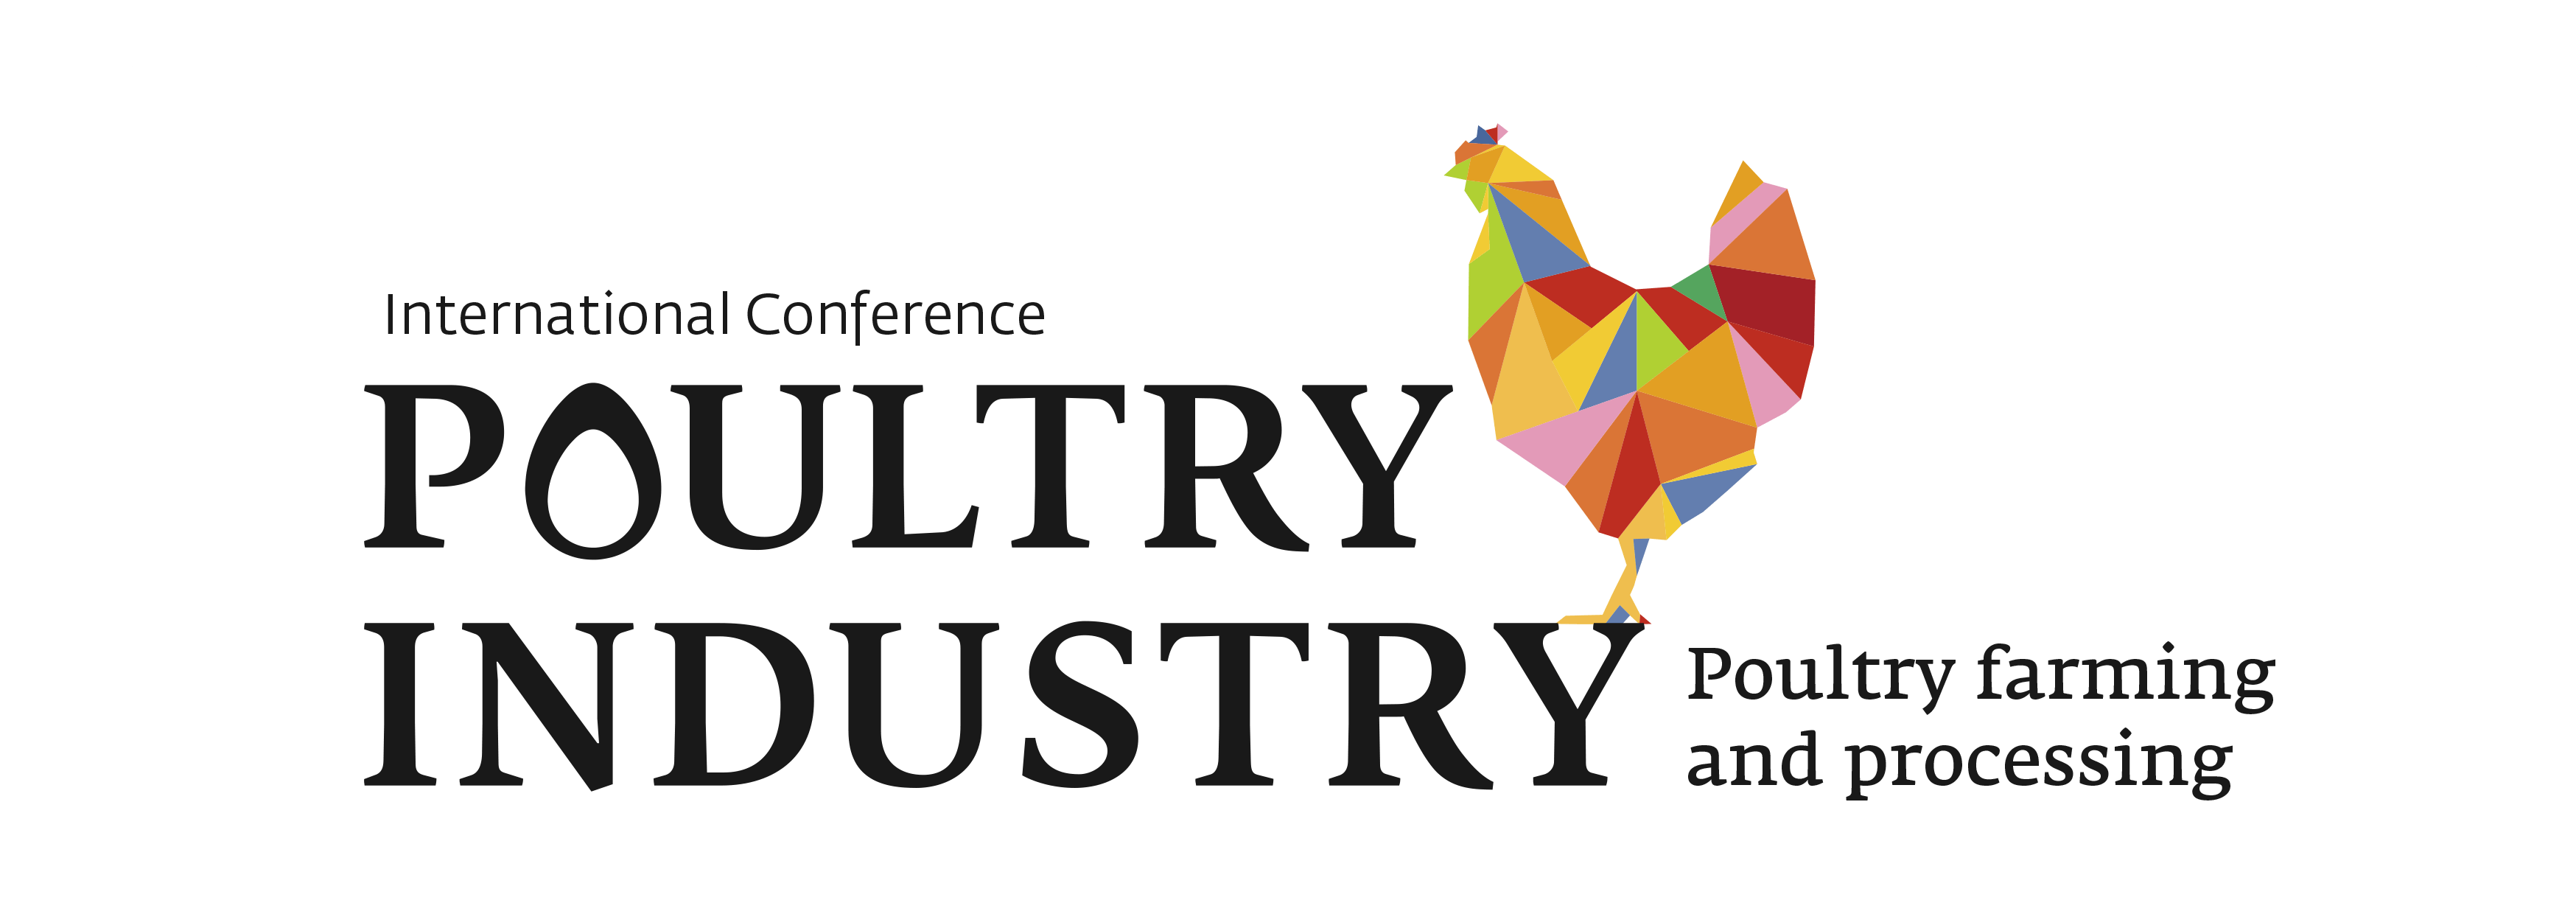 POULTRY 2017